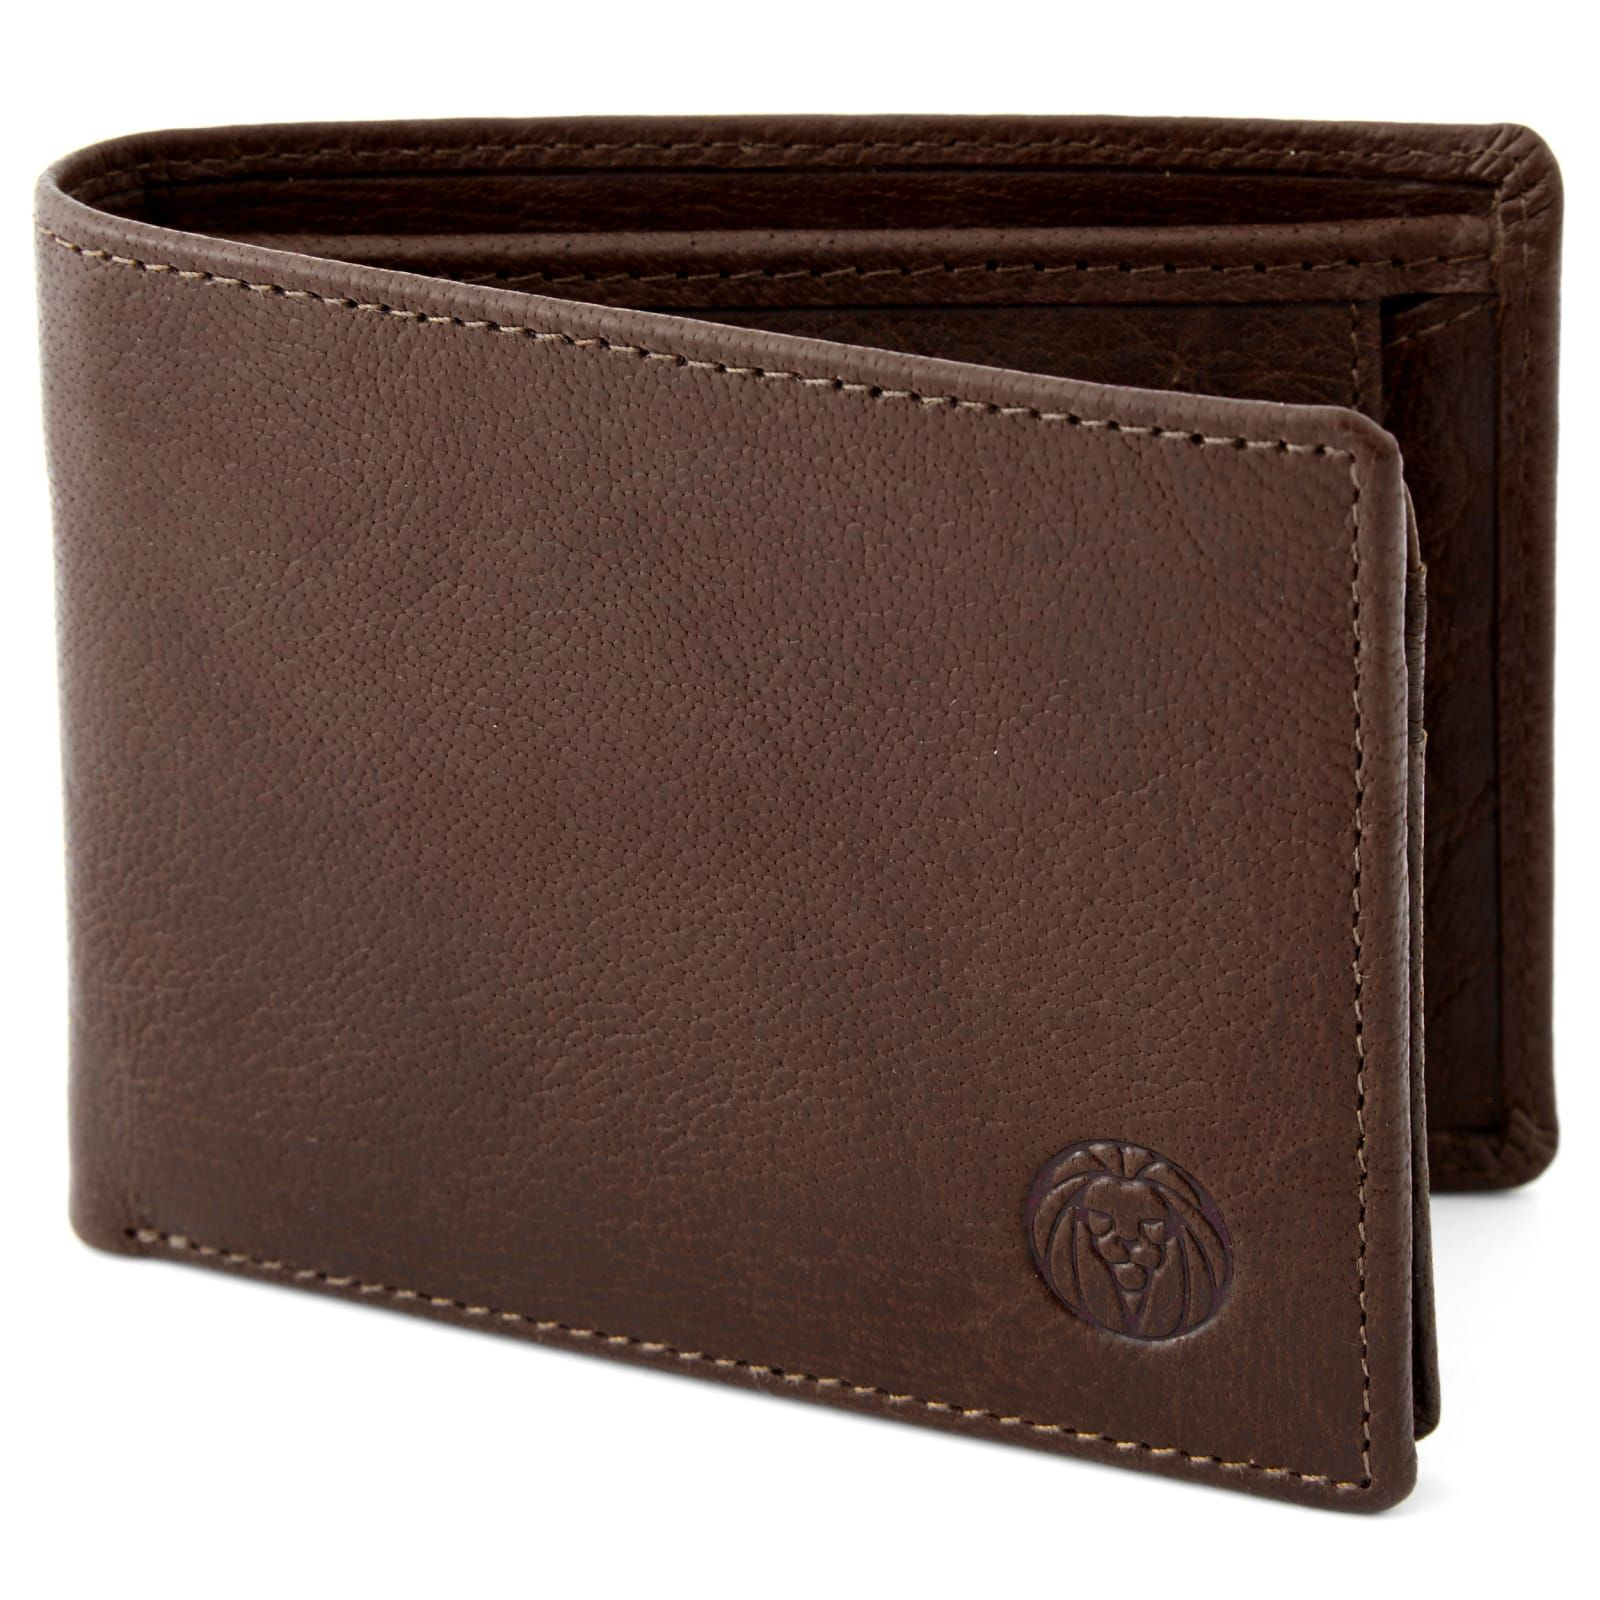 My Brown California Wallet | In stock! | Lucleon #leatherwallets